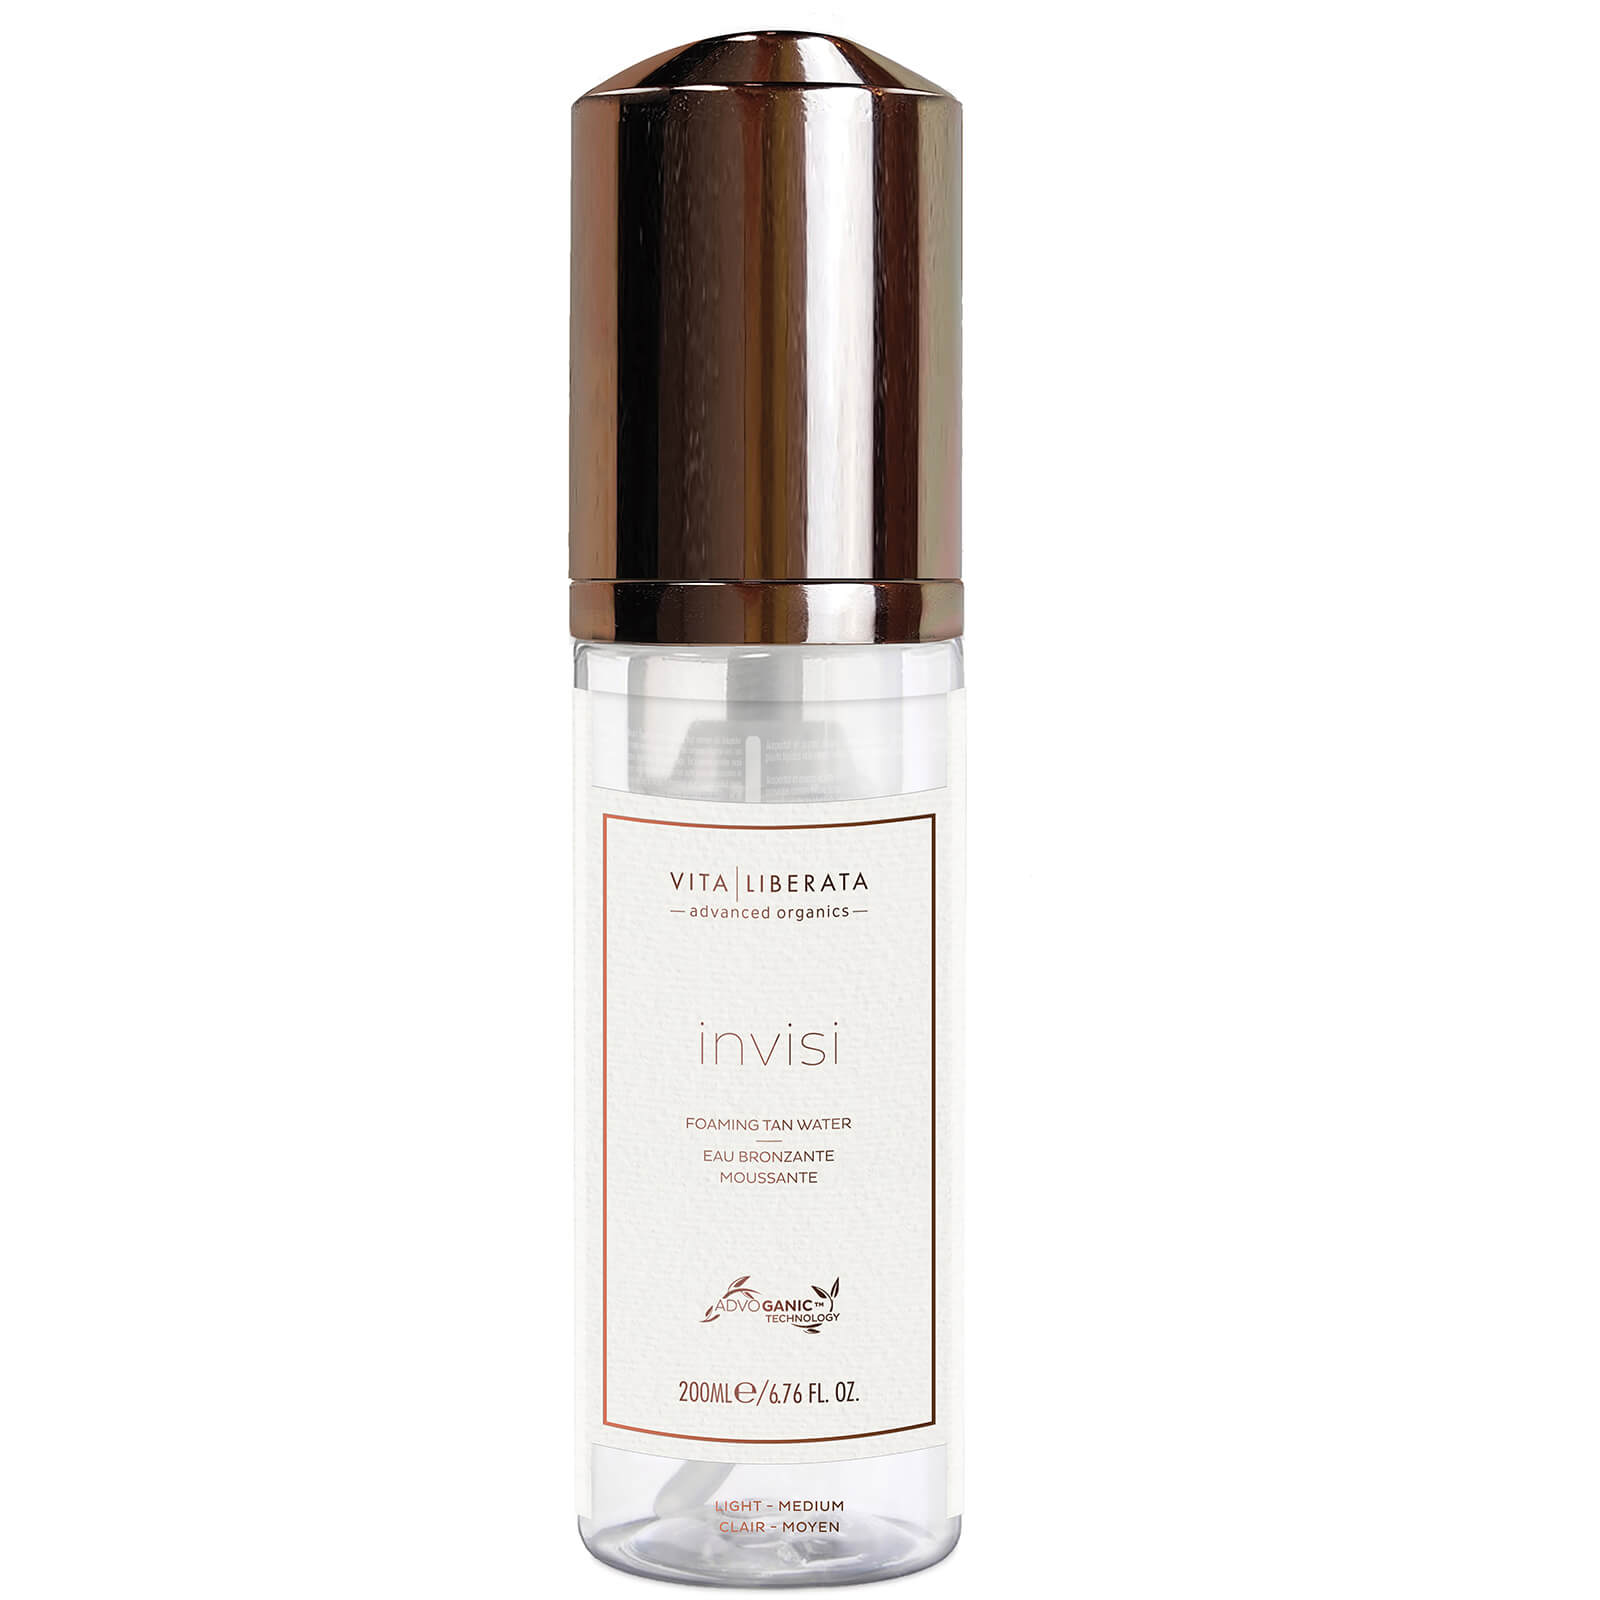 Vita Liberata Invisi Foaming Tan Water - Light/Medium 200ml